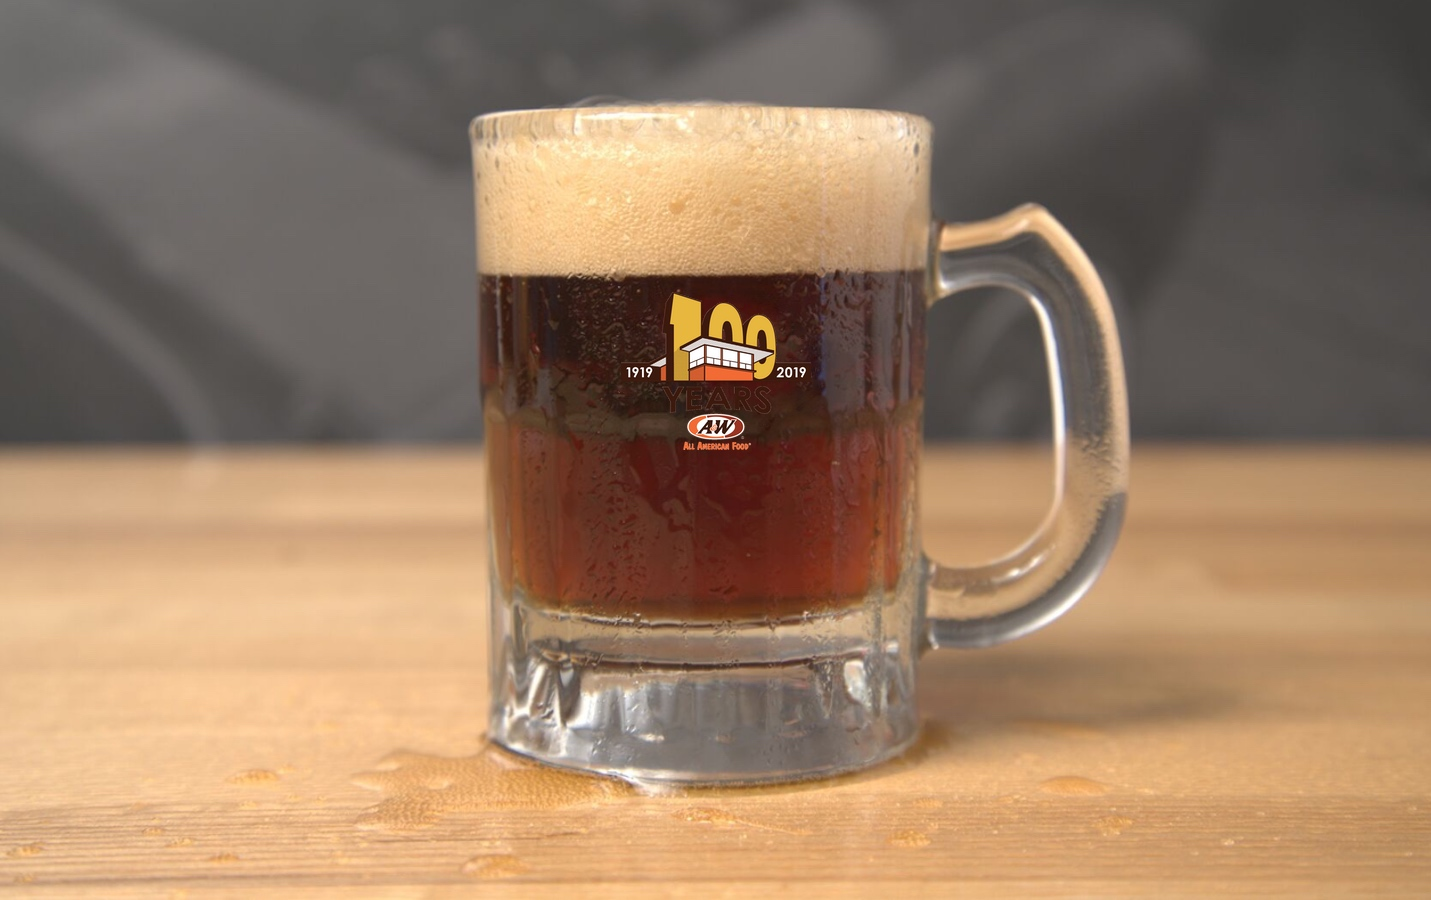 A&W Baby Mug with gold 100th Anniversary logo filled with root beer